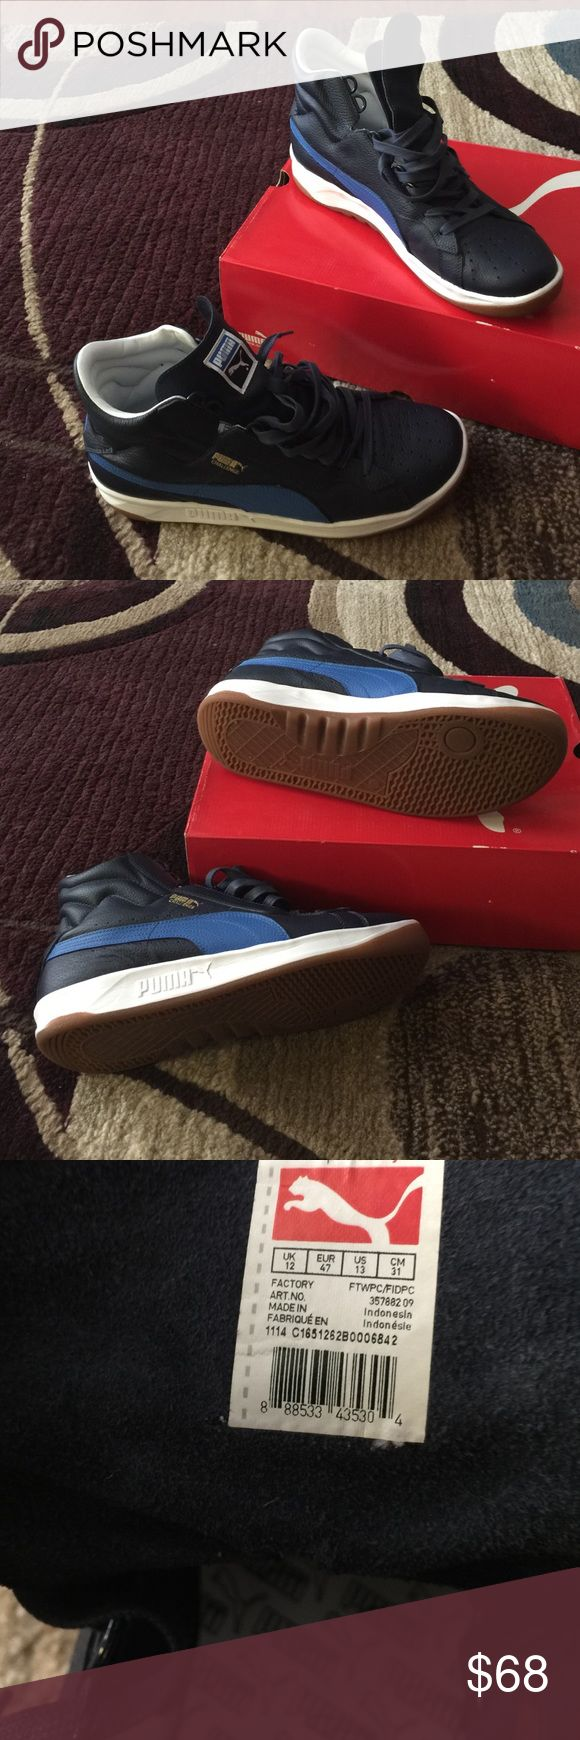 Original puma 👟 Worn only once comes with the original box 📦 and was bought at USA kick Puma Shoes Sneakers